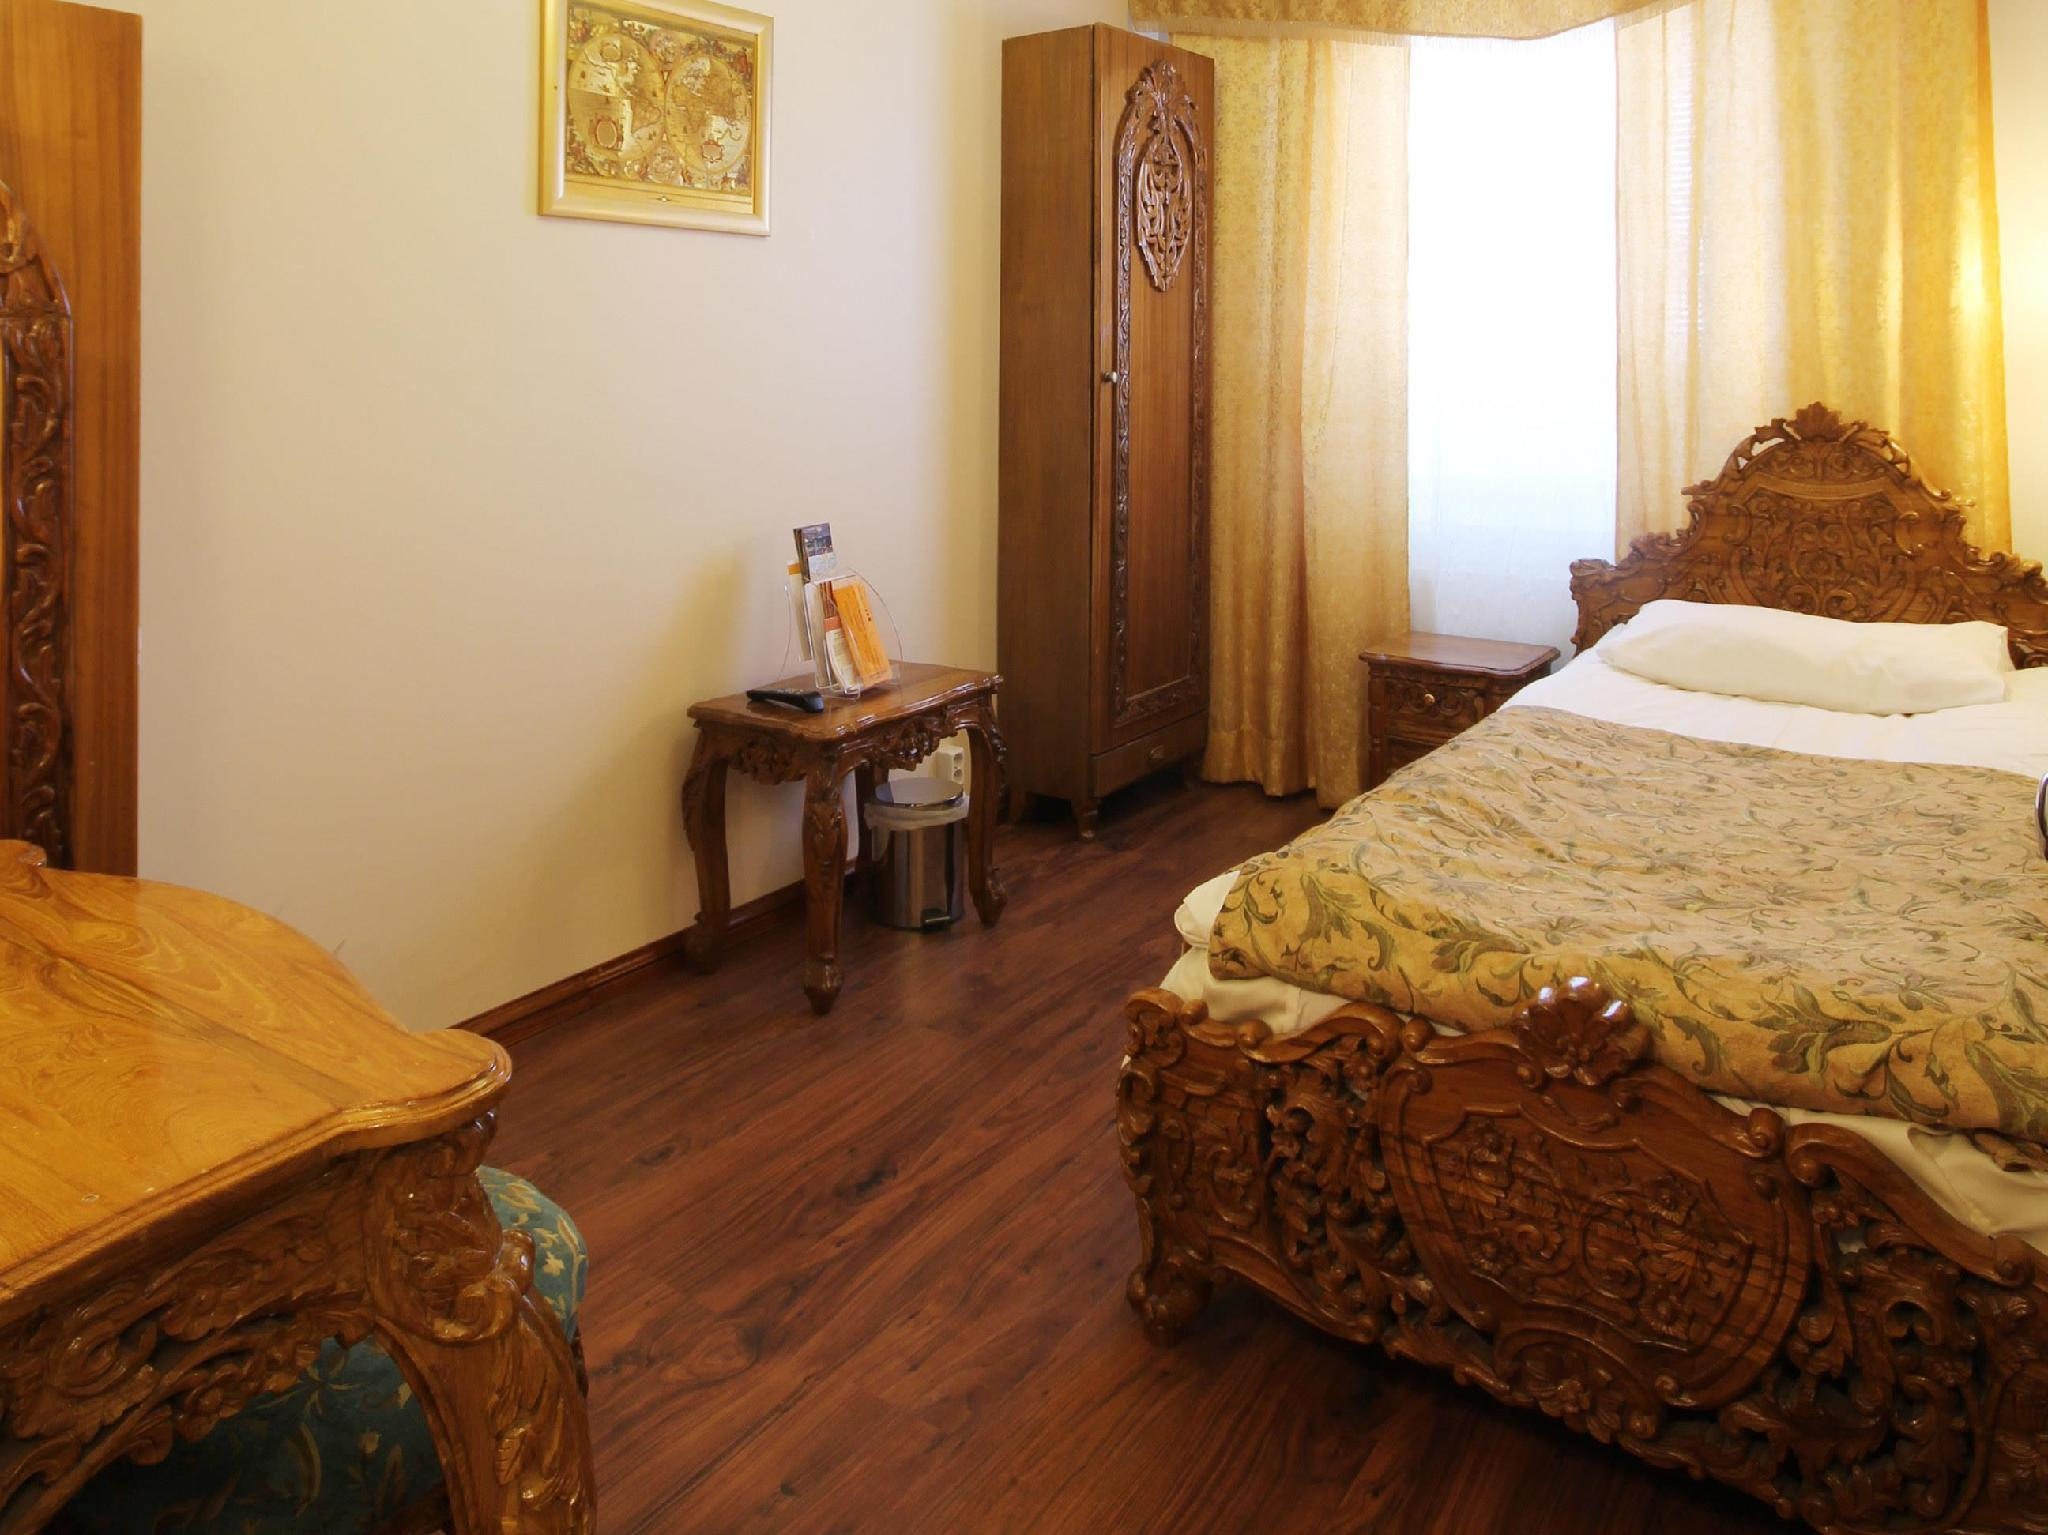 Cameră single cu baie comună (Single Room with Shared Bathroom)